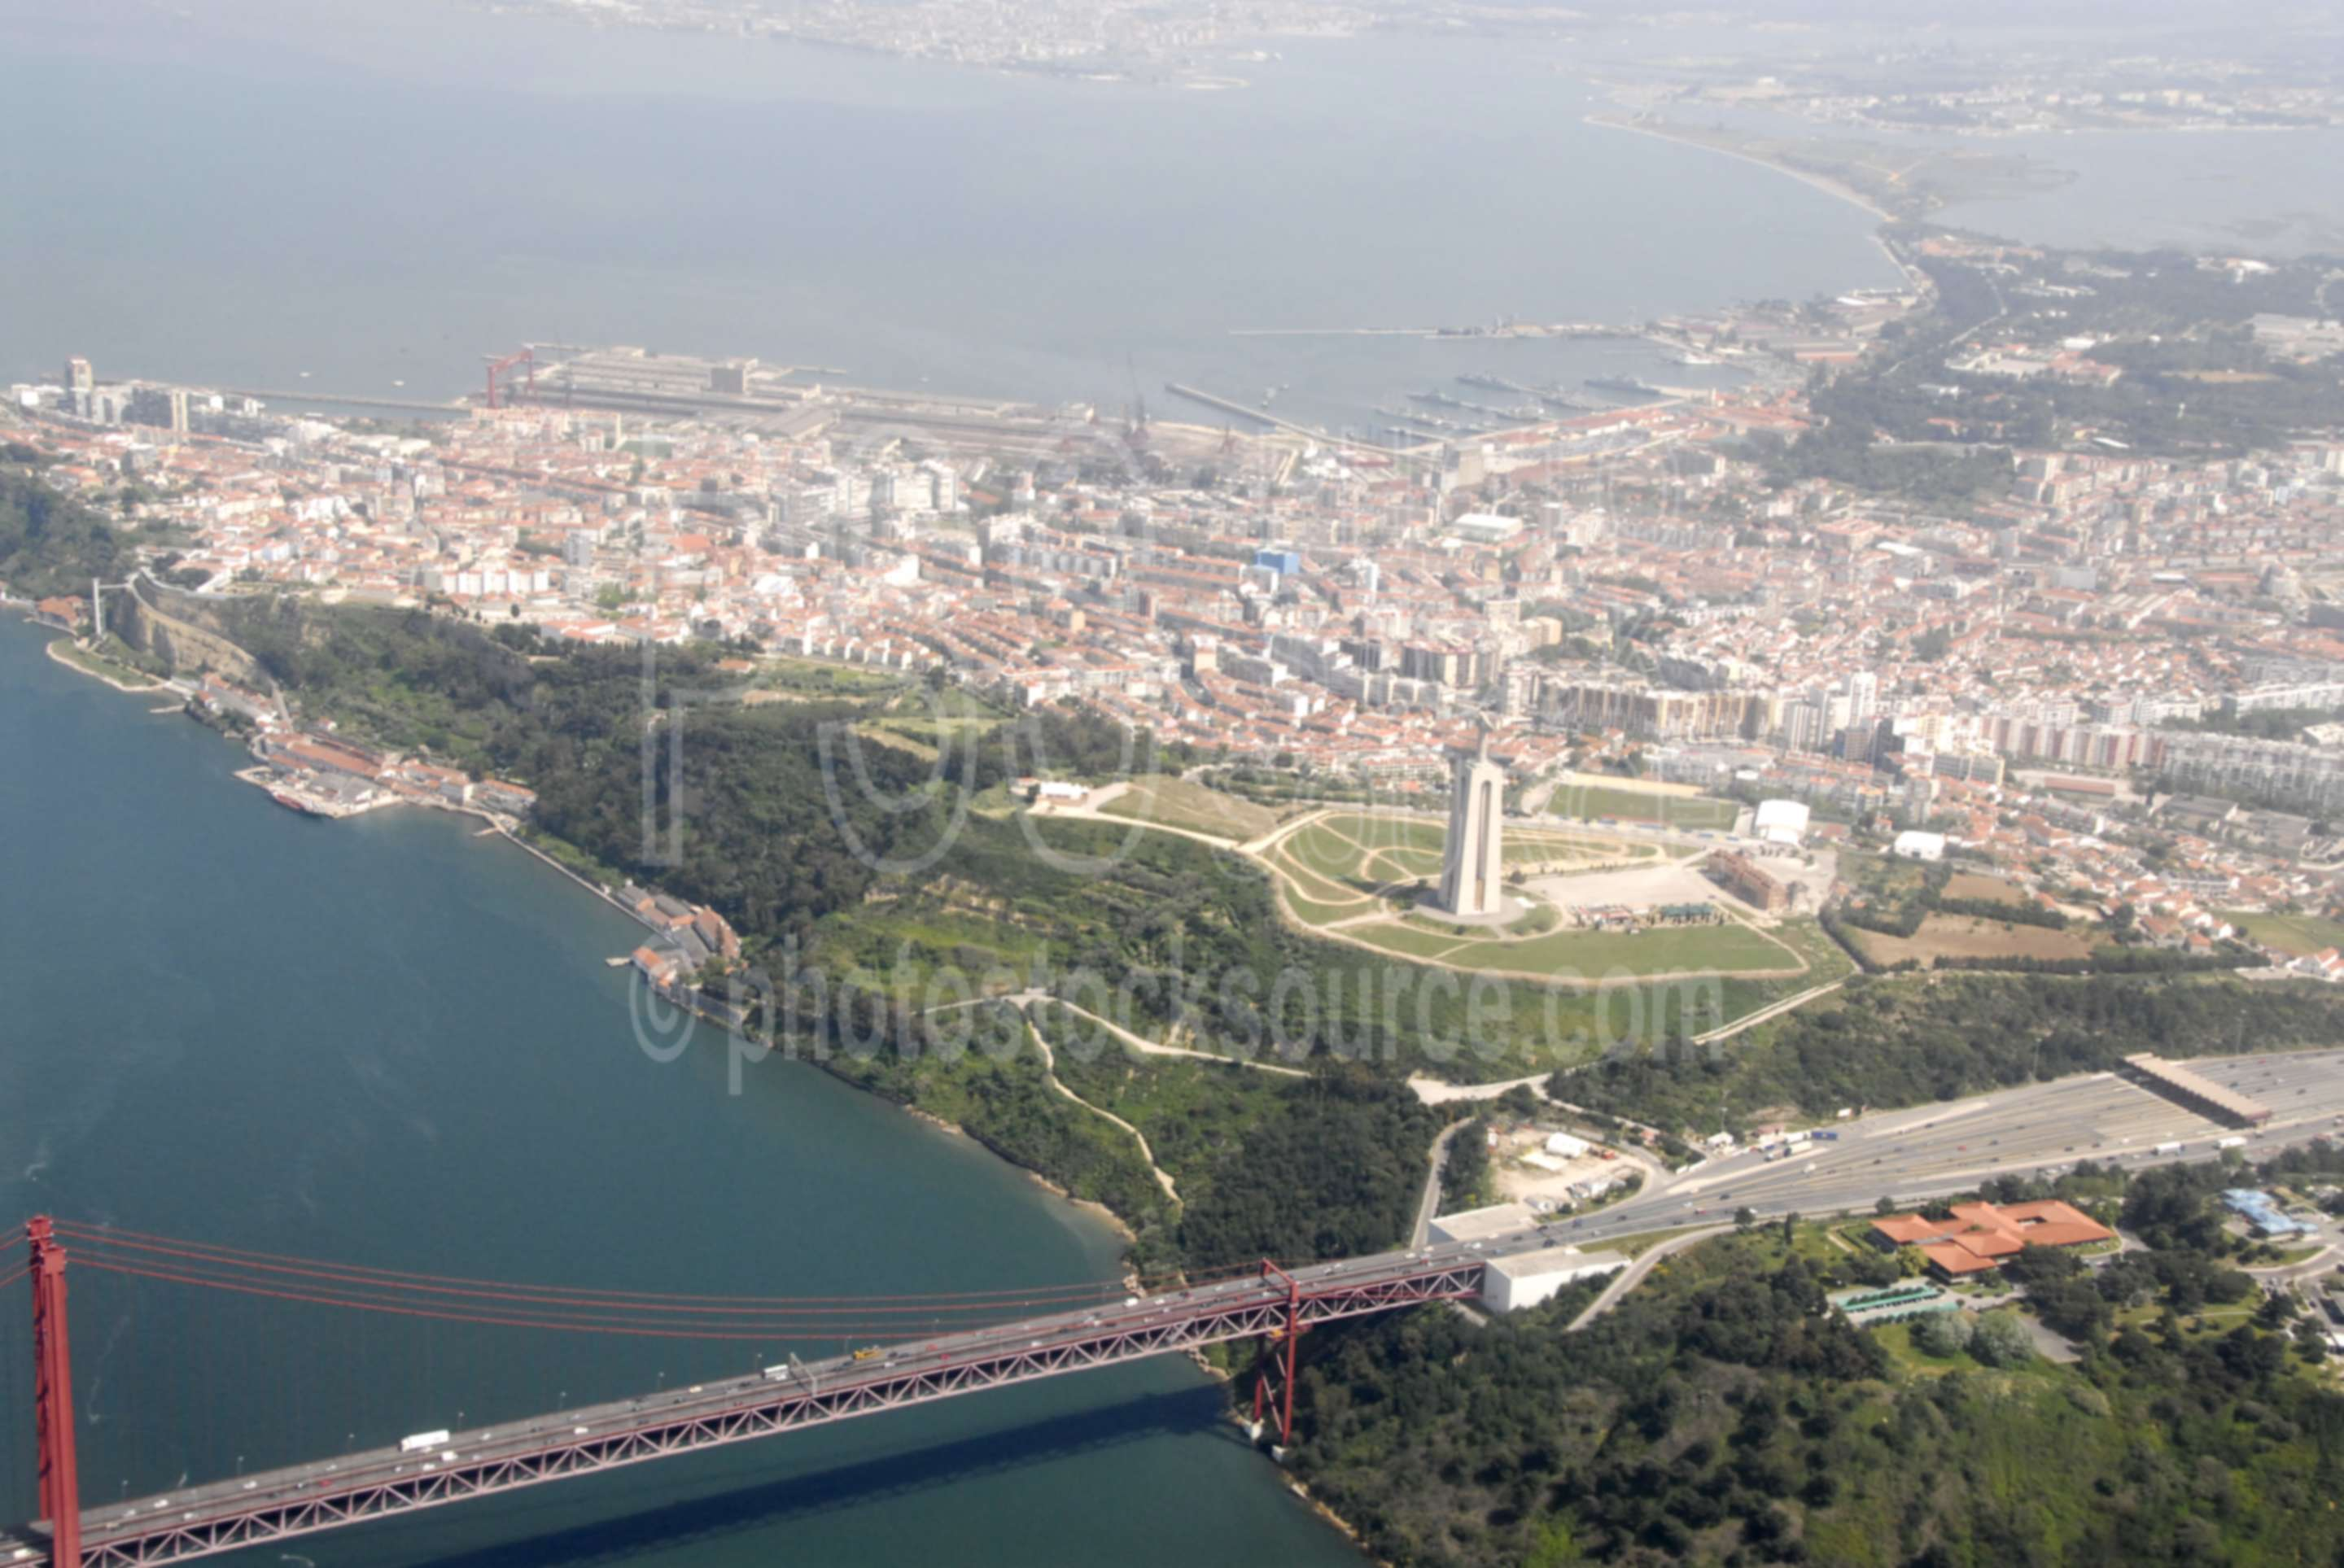 Twenty-fifth of April Bridge,tagus river,statue,monument,bridge,25th,bridges